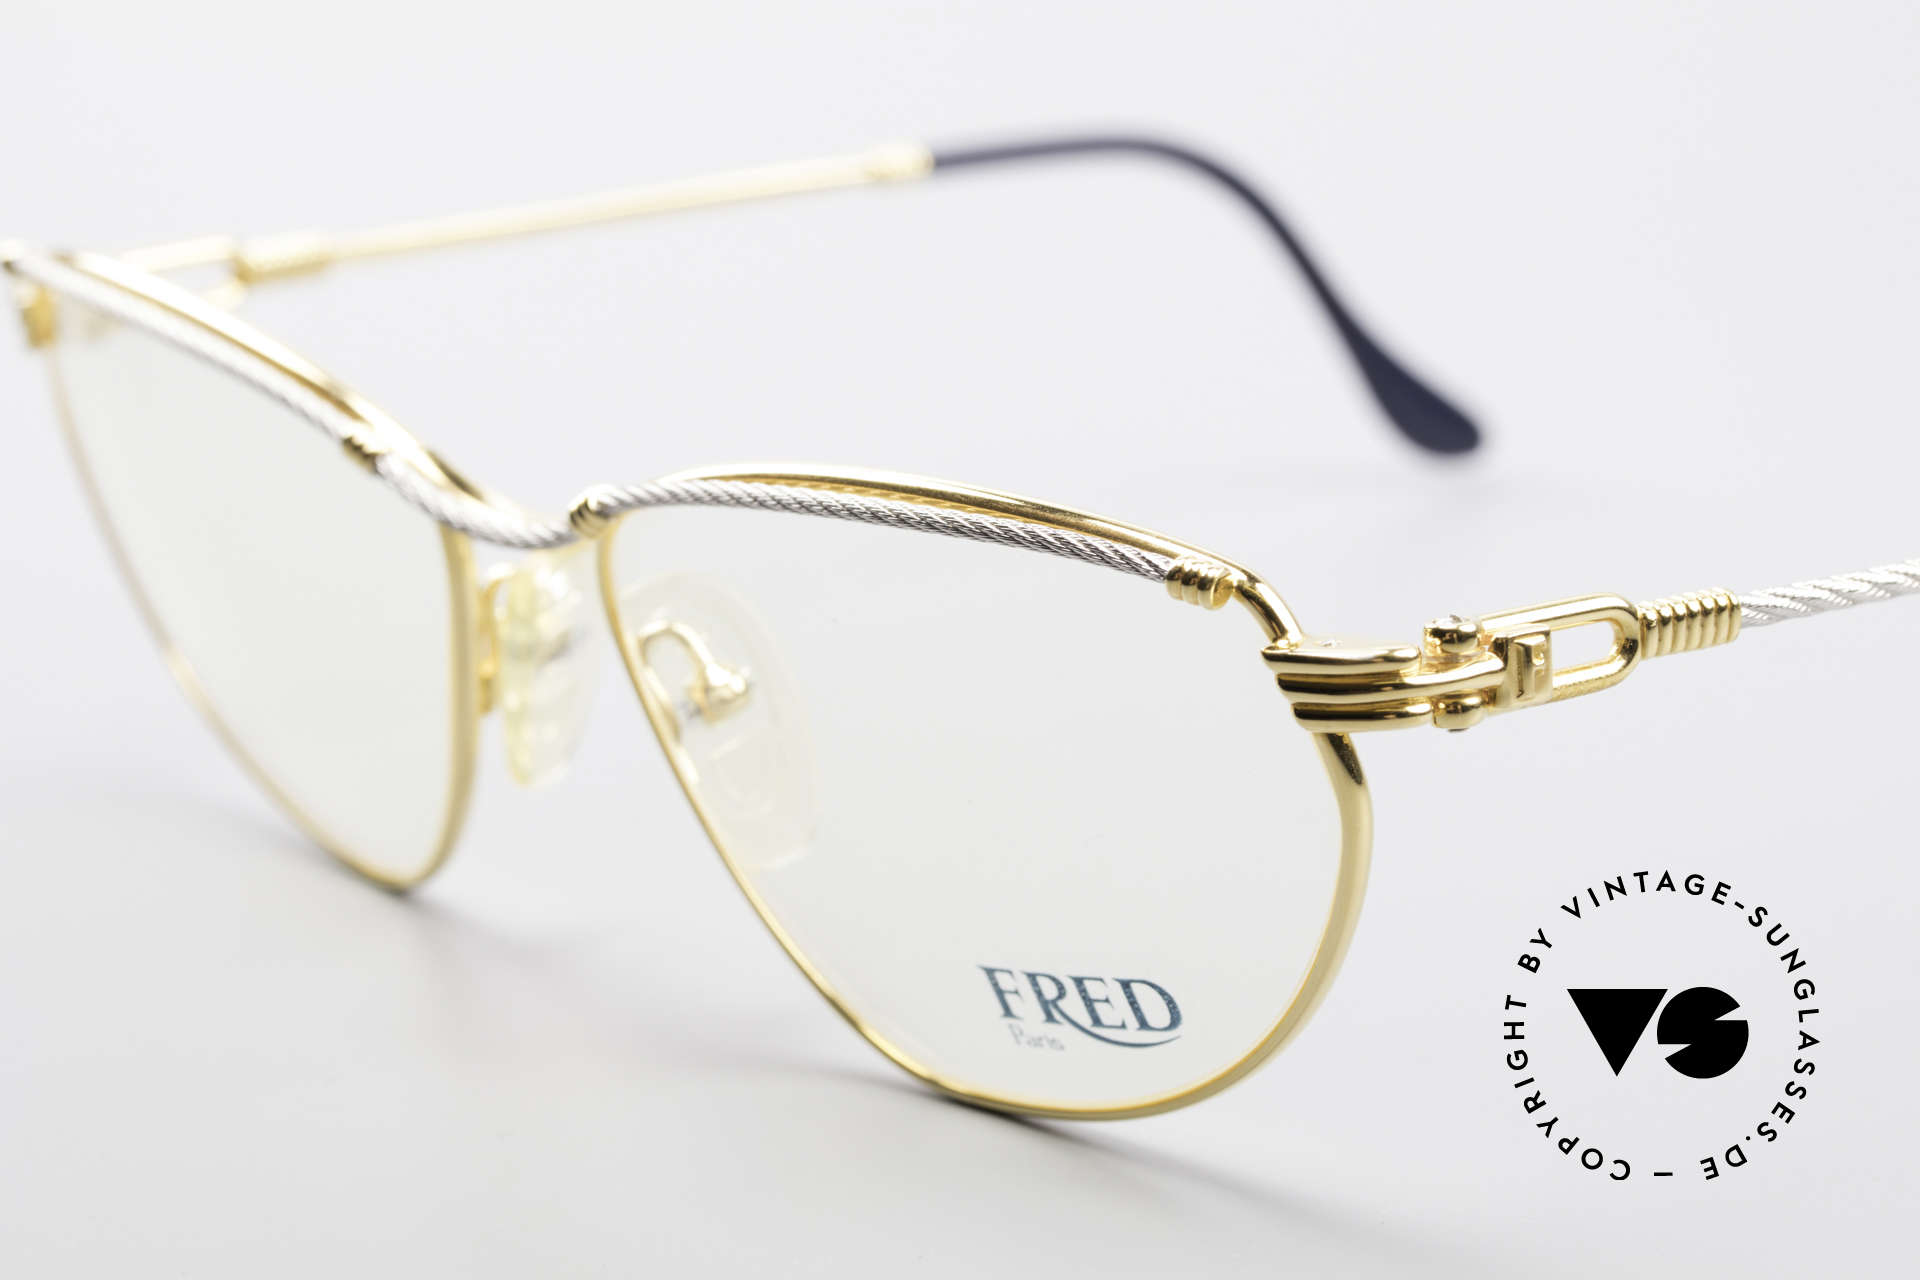 Fred Alize Luxury M Eyeglasses Ladies, temples and bridge are twisted like a hawser; unique, Made for Women